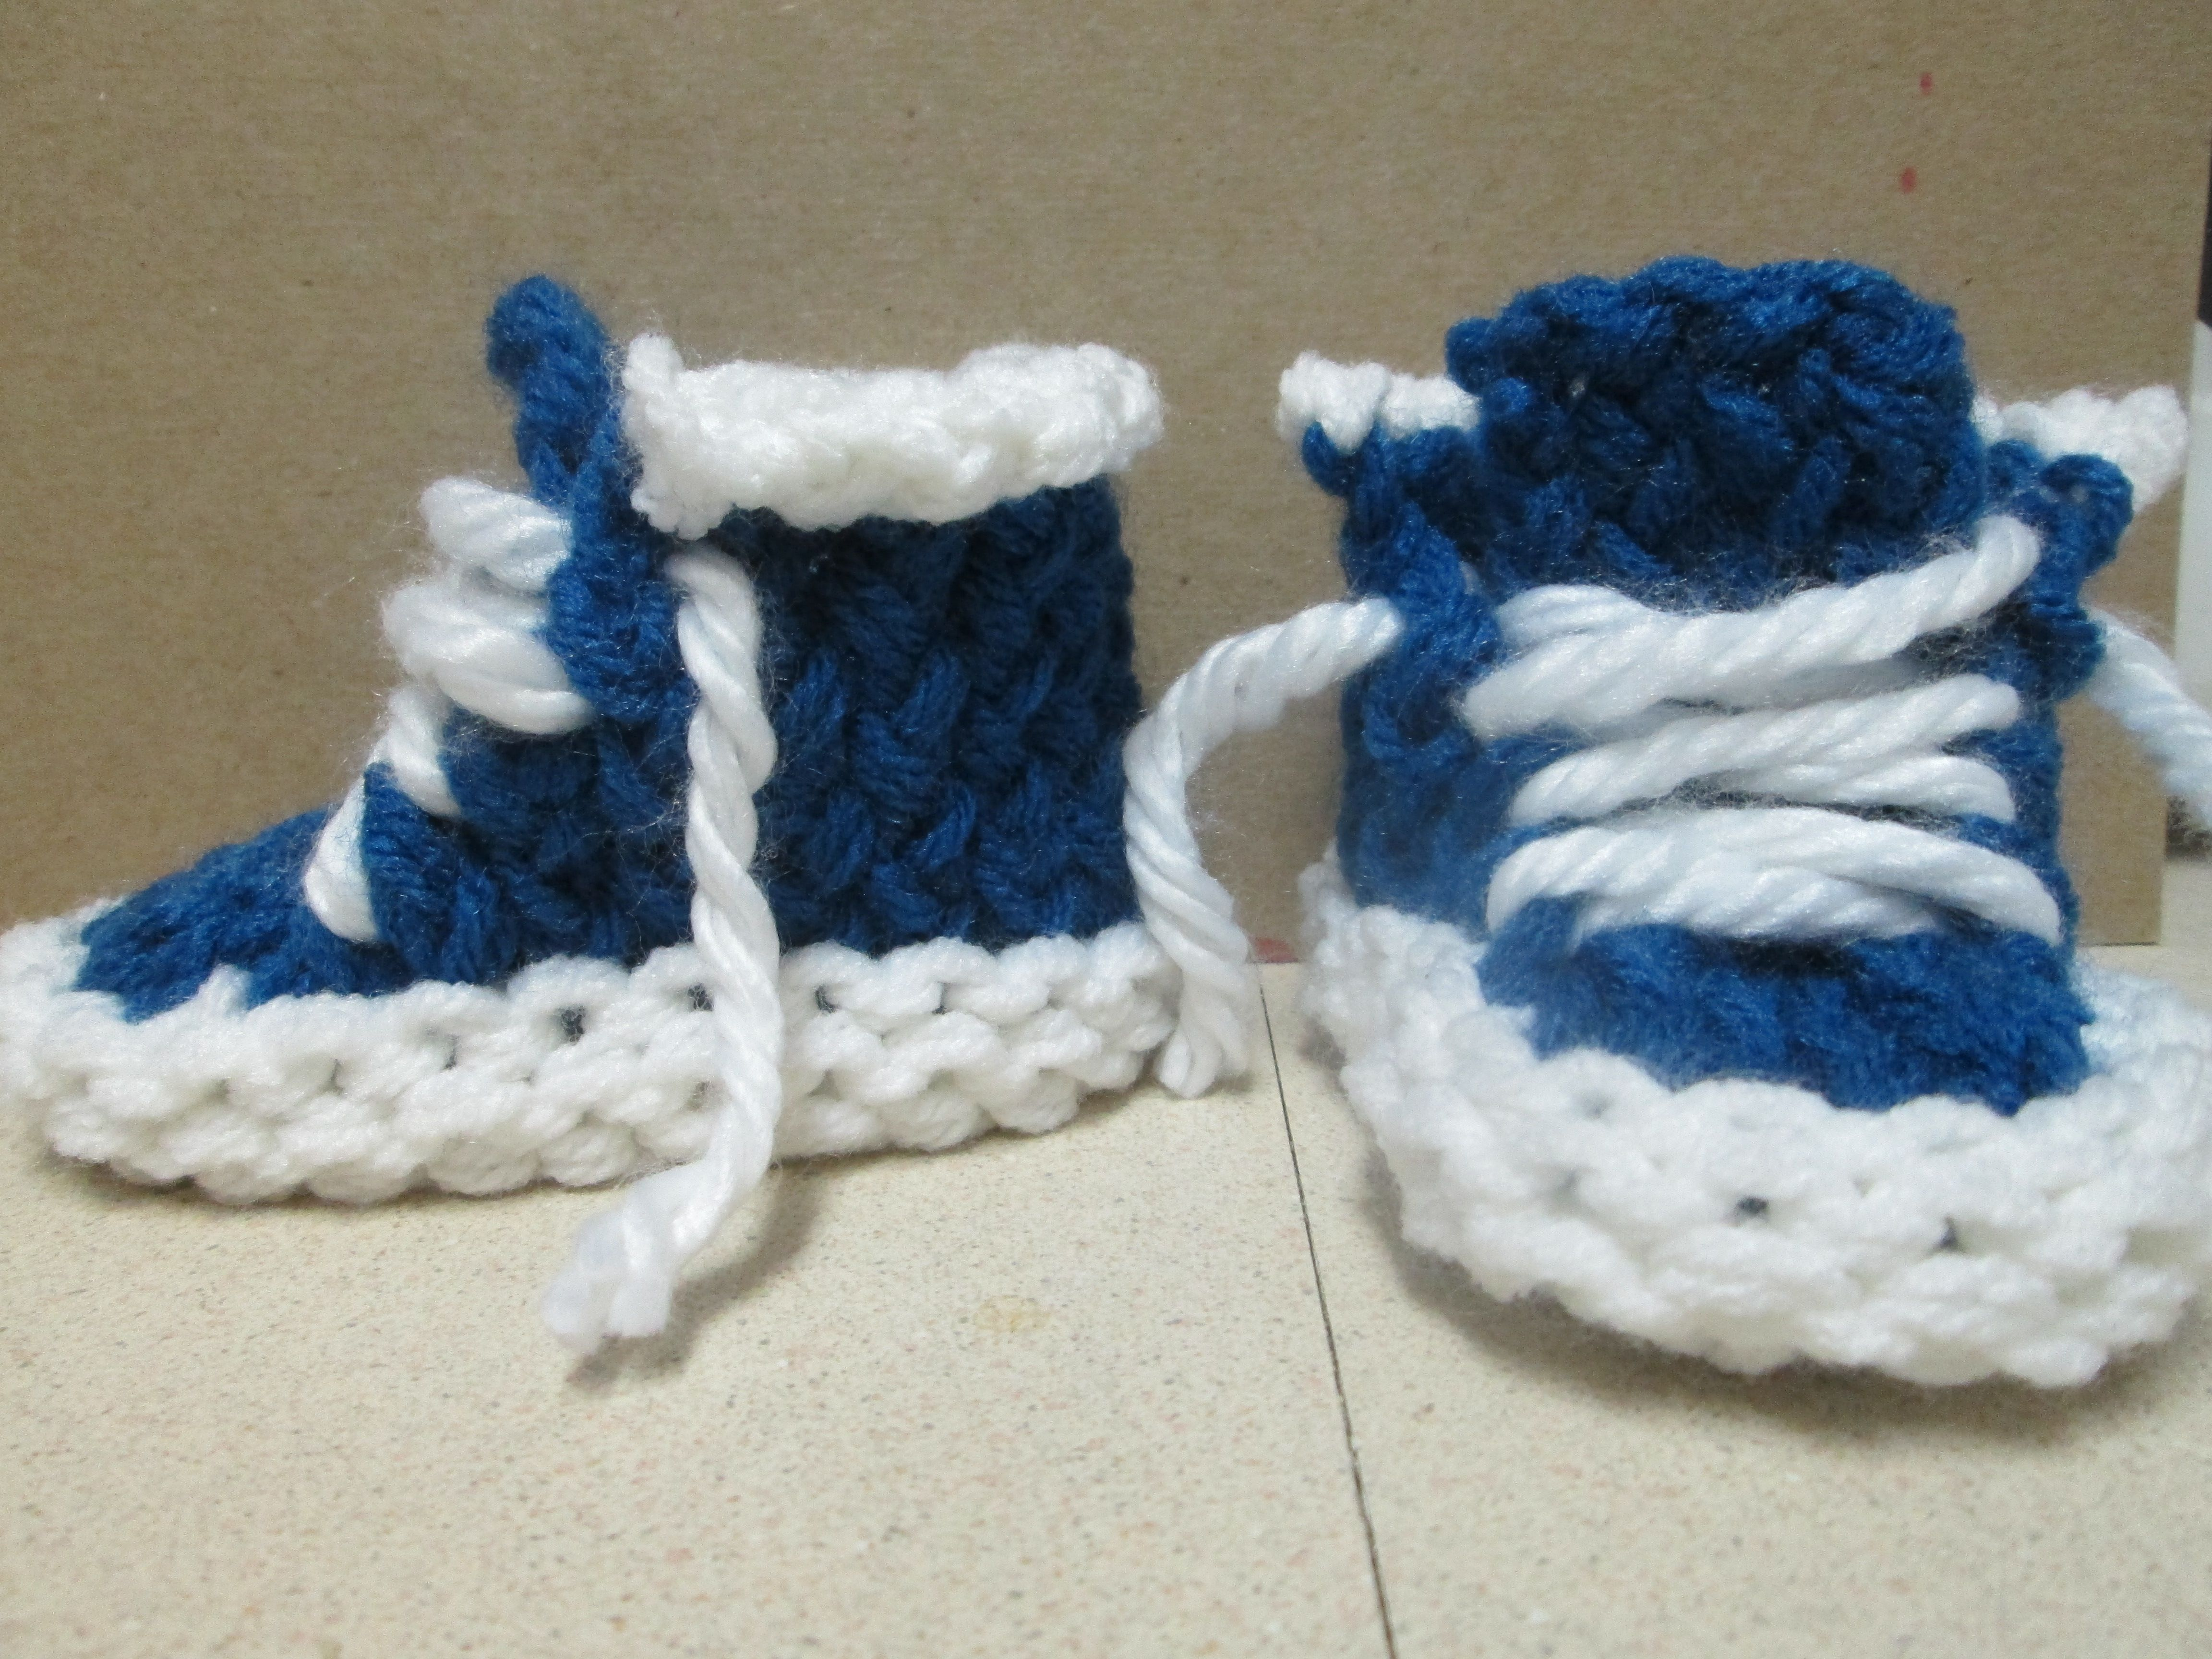 Loom Knit Baby Booties Made On The 24peg Loom Im So Proud Of These